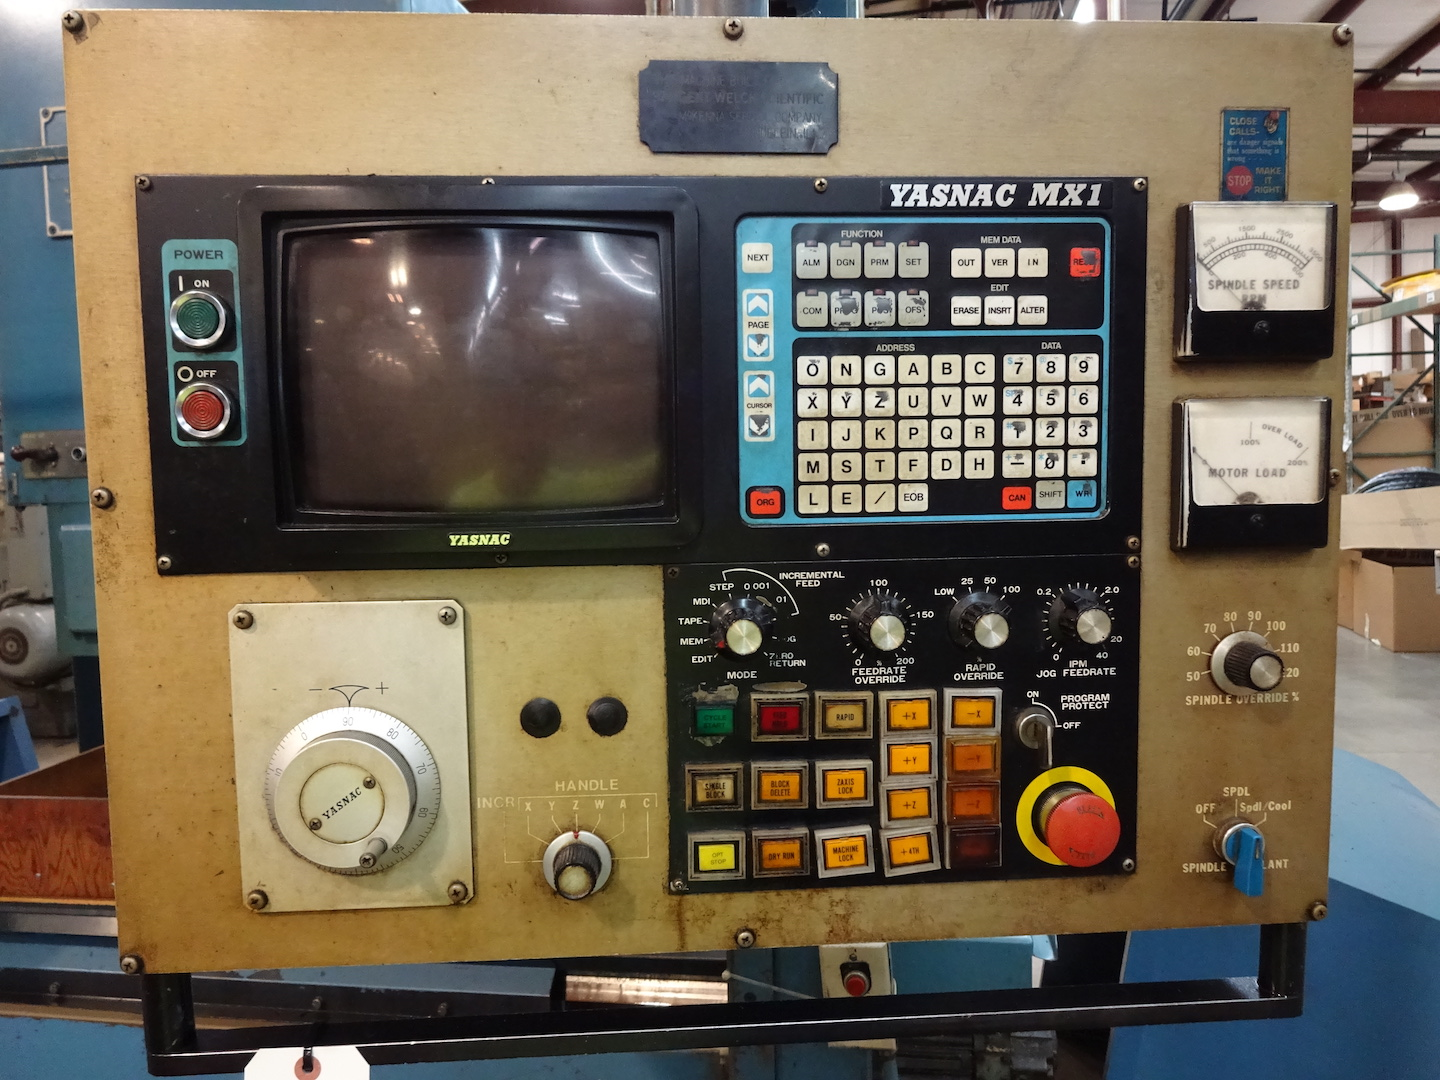 Lot 19 - Acroloc Series 10/MX1 CNC Vertical Machining Center, S/N 84-01-1378, Yasnac MX1 Control, 38 in. x 14